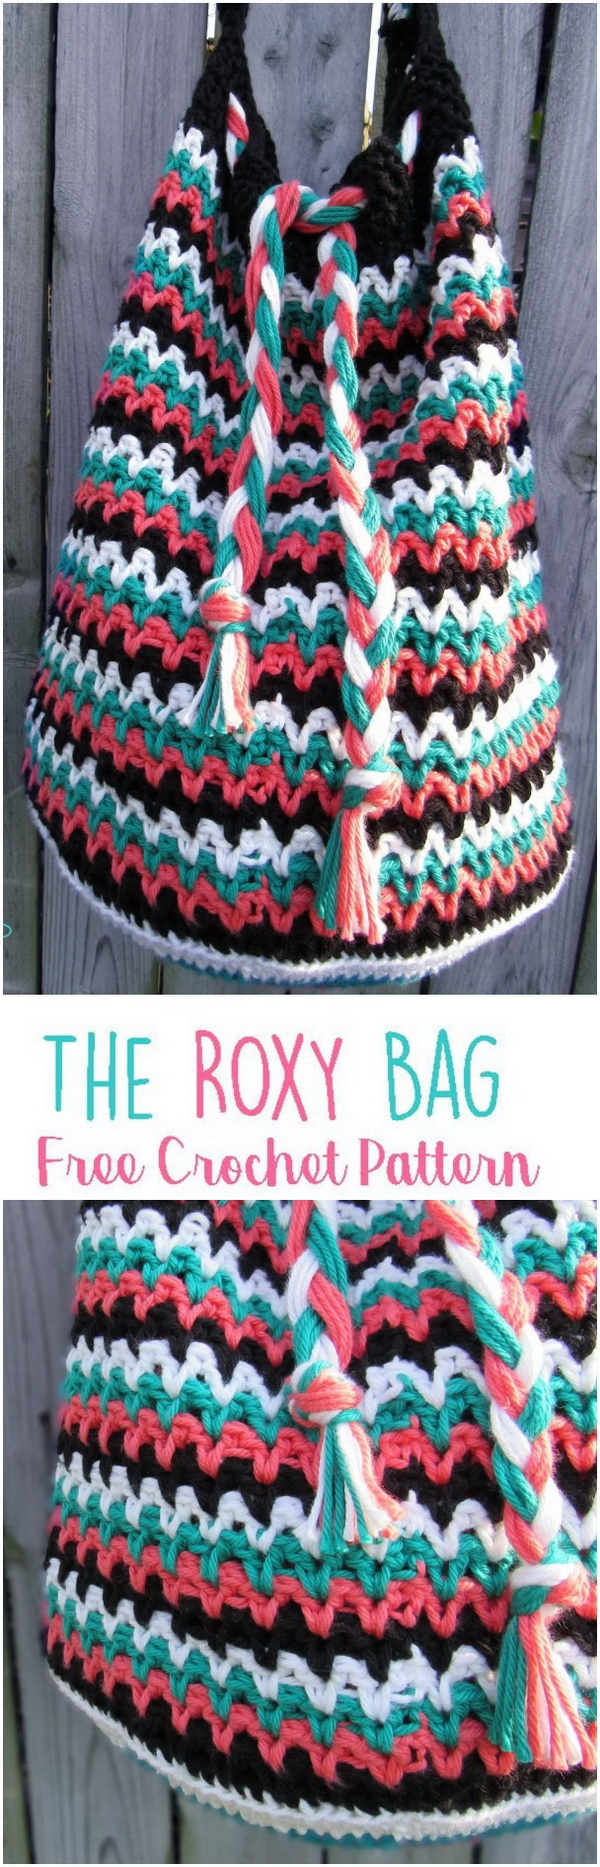 Crochet Roxy Bag. The Roxy bag is a large spacious bag that is perfect for every day use. It has a pull-tie enclosure which makes for easy access of items in the bag.